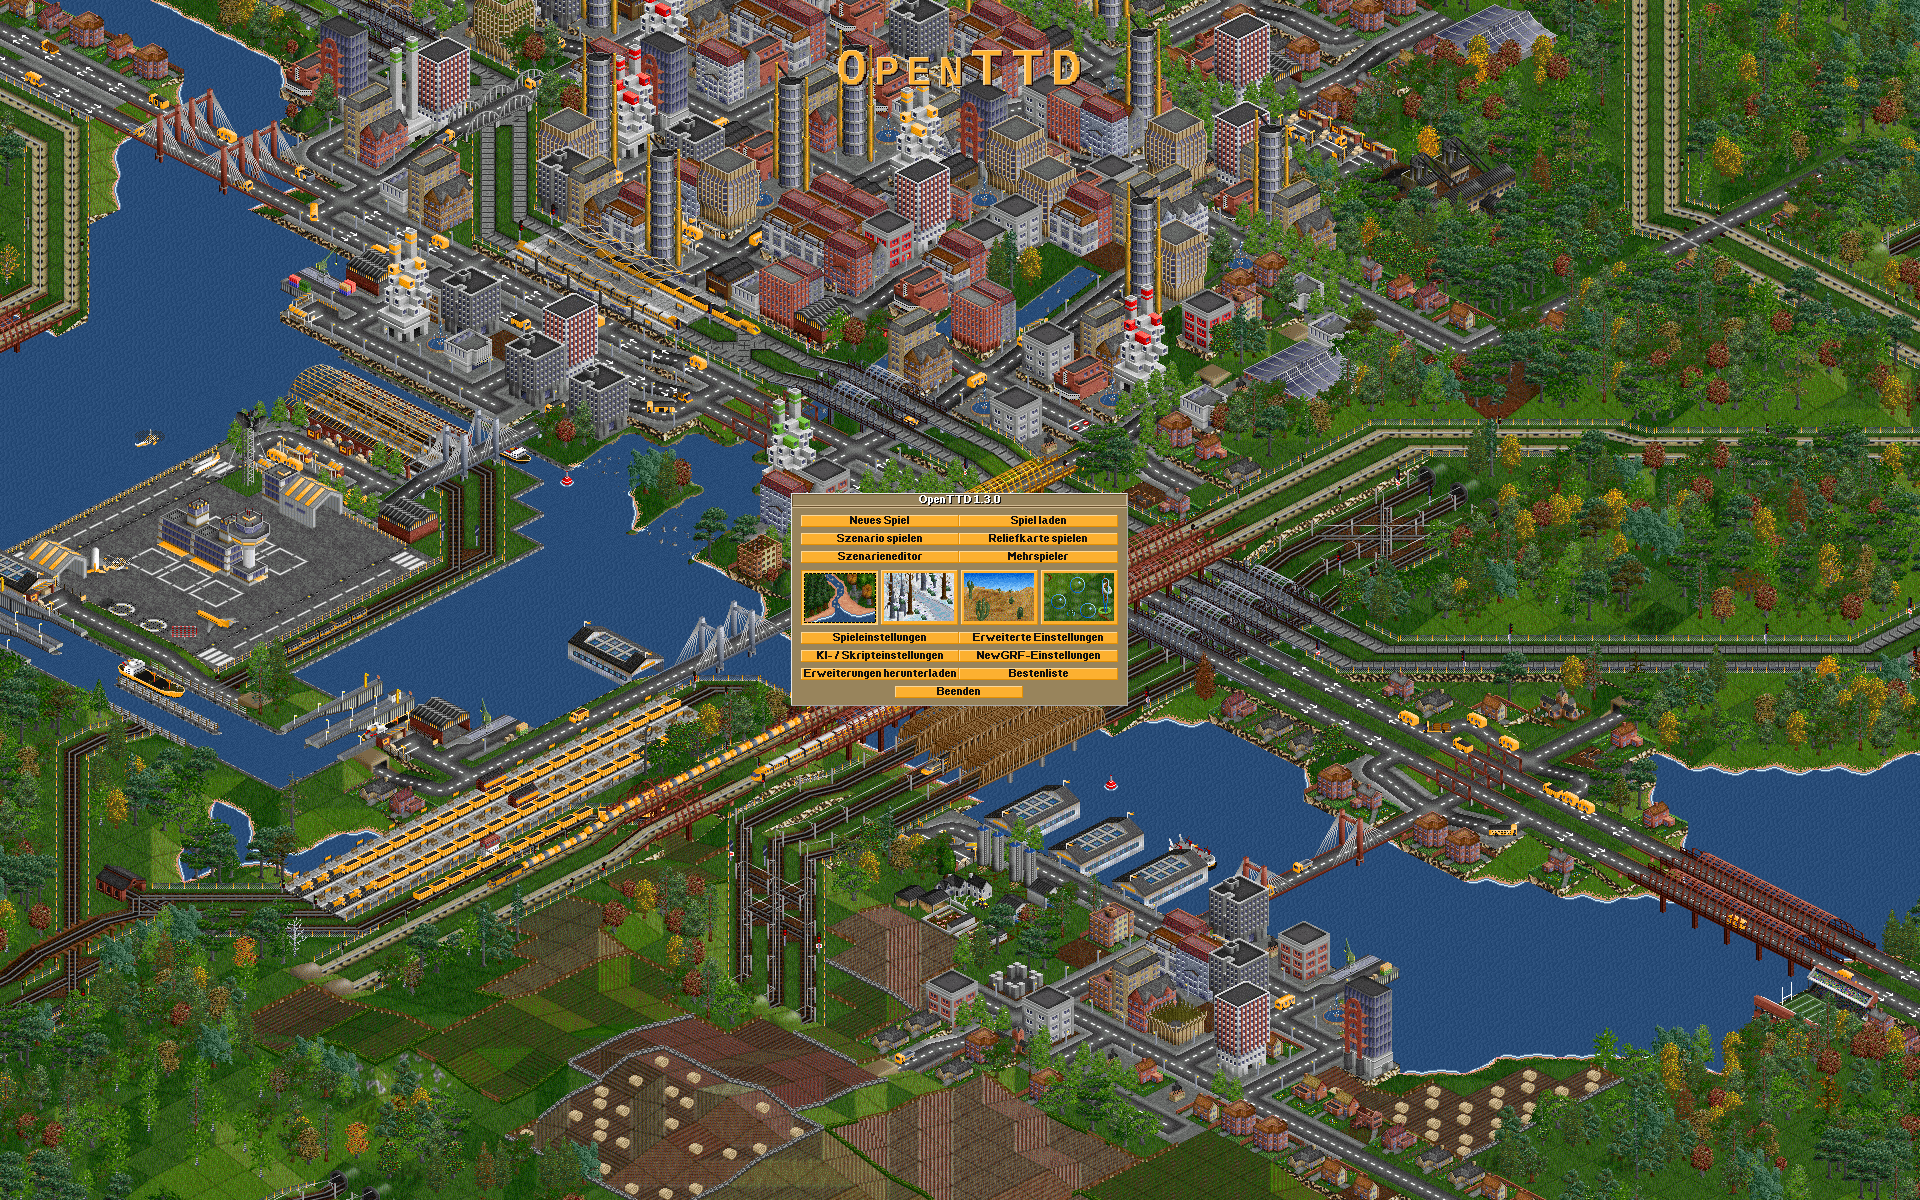 The title screen from OpenTTD 1.3.